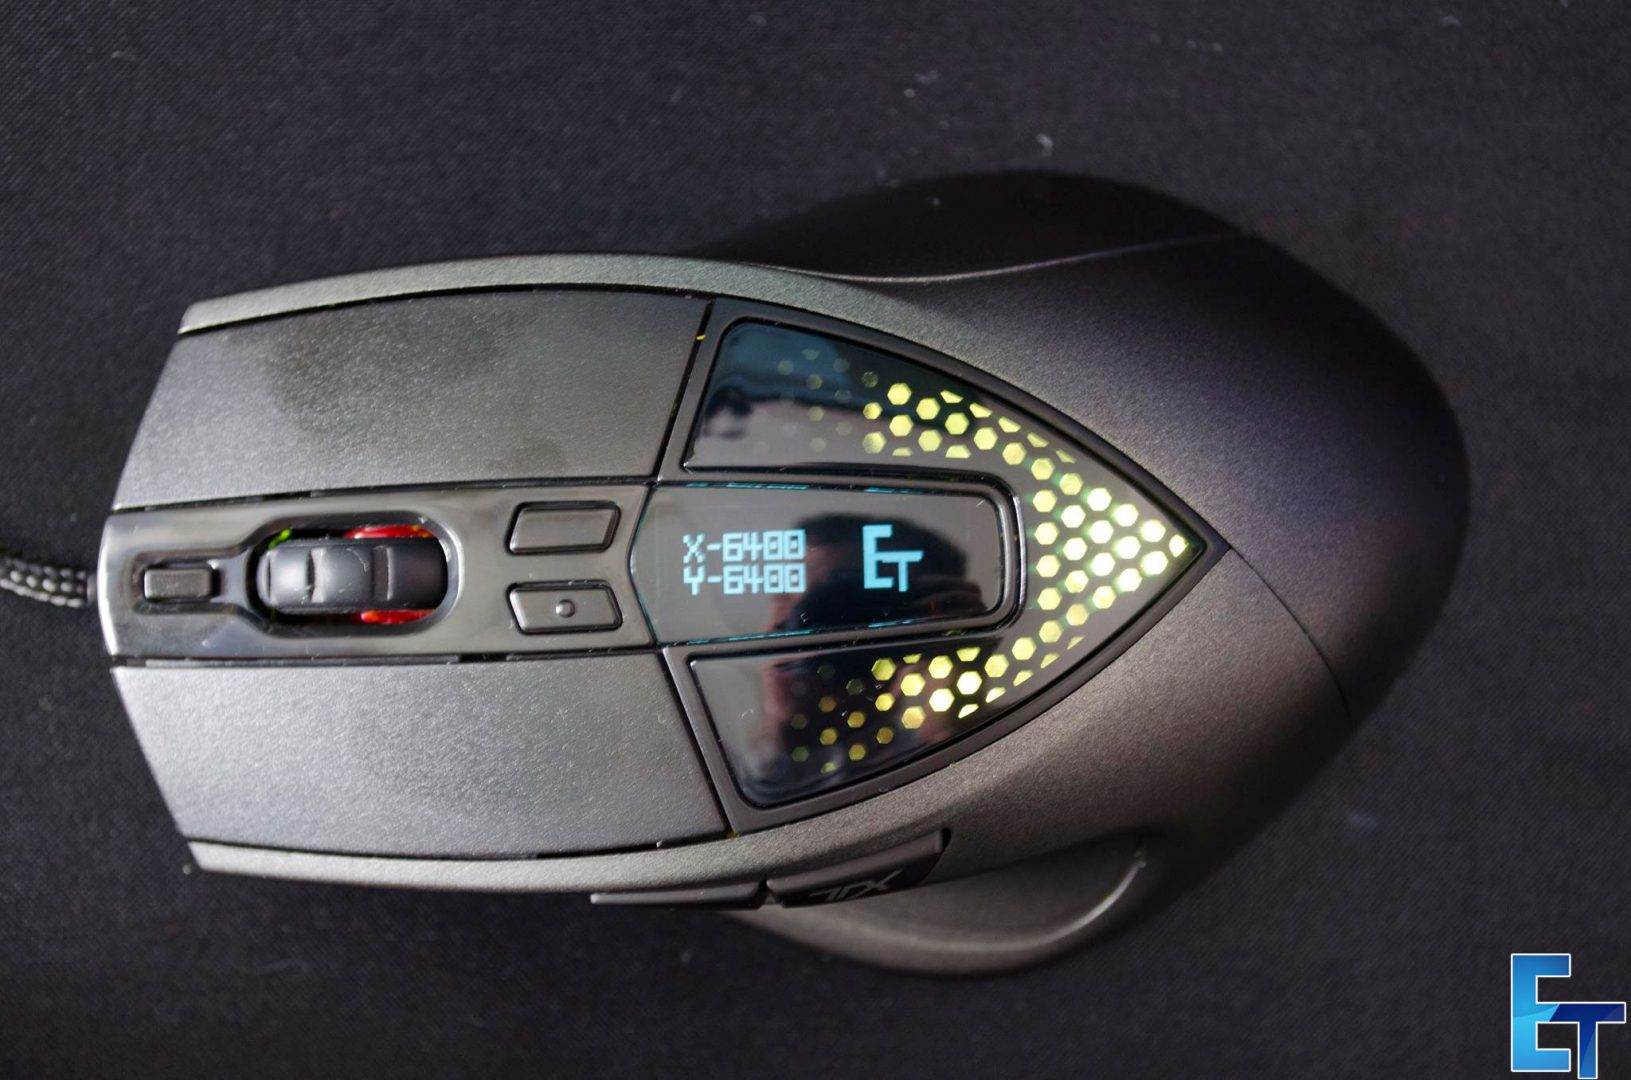 Cooler-Master-Sentinel-III-Ergonomic-Gaming-Mouse-Review_2